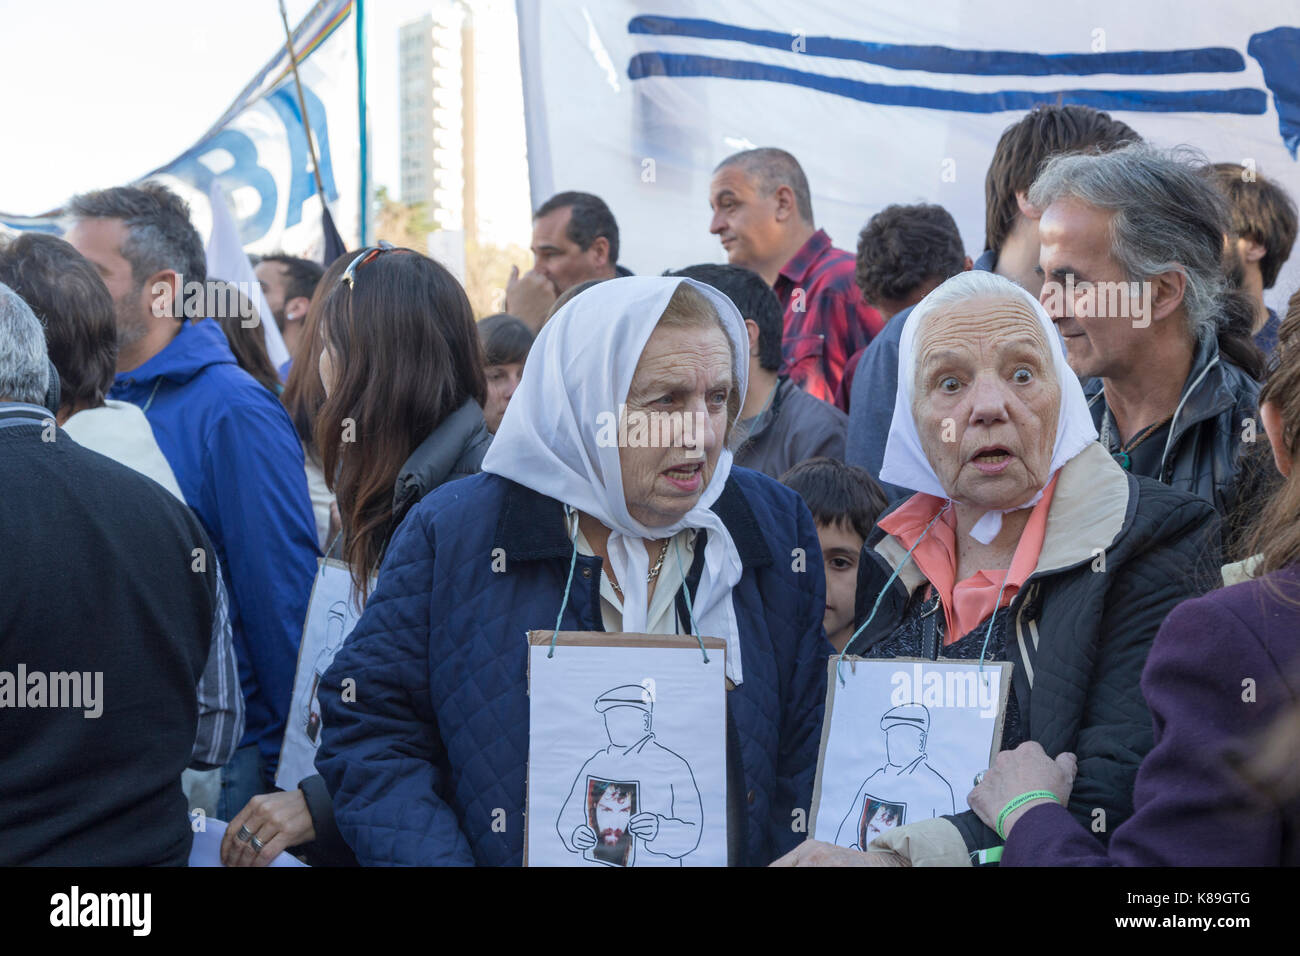 La Plata, Argentina. 18th Sep, 2017. Social, political and human rights organizations march eleven years after the - Stock Image